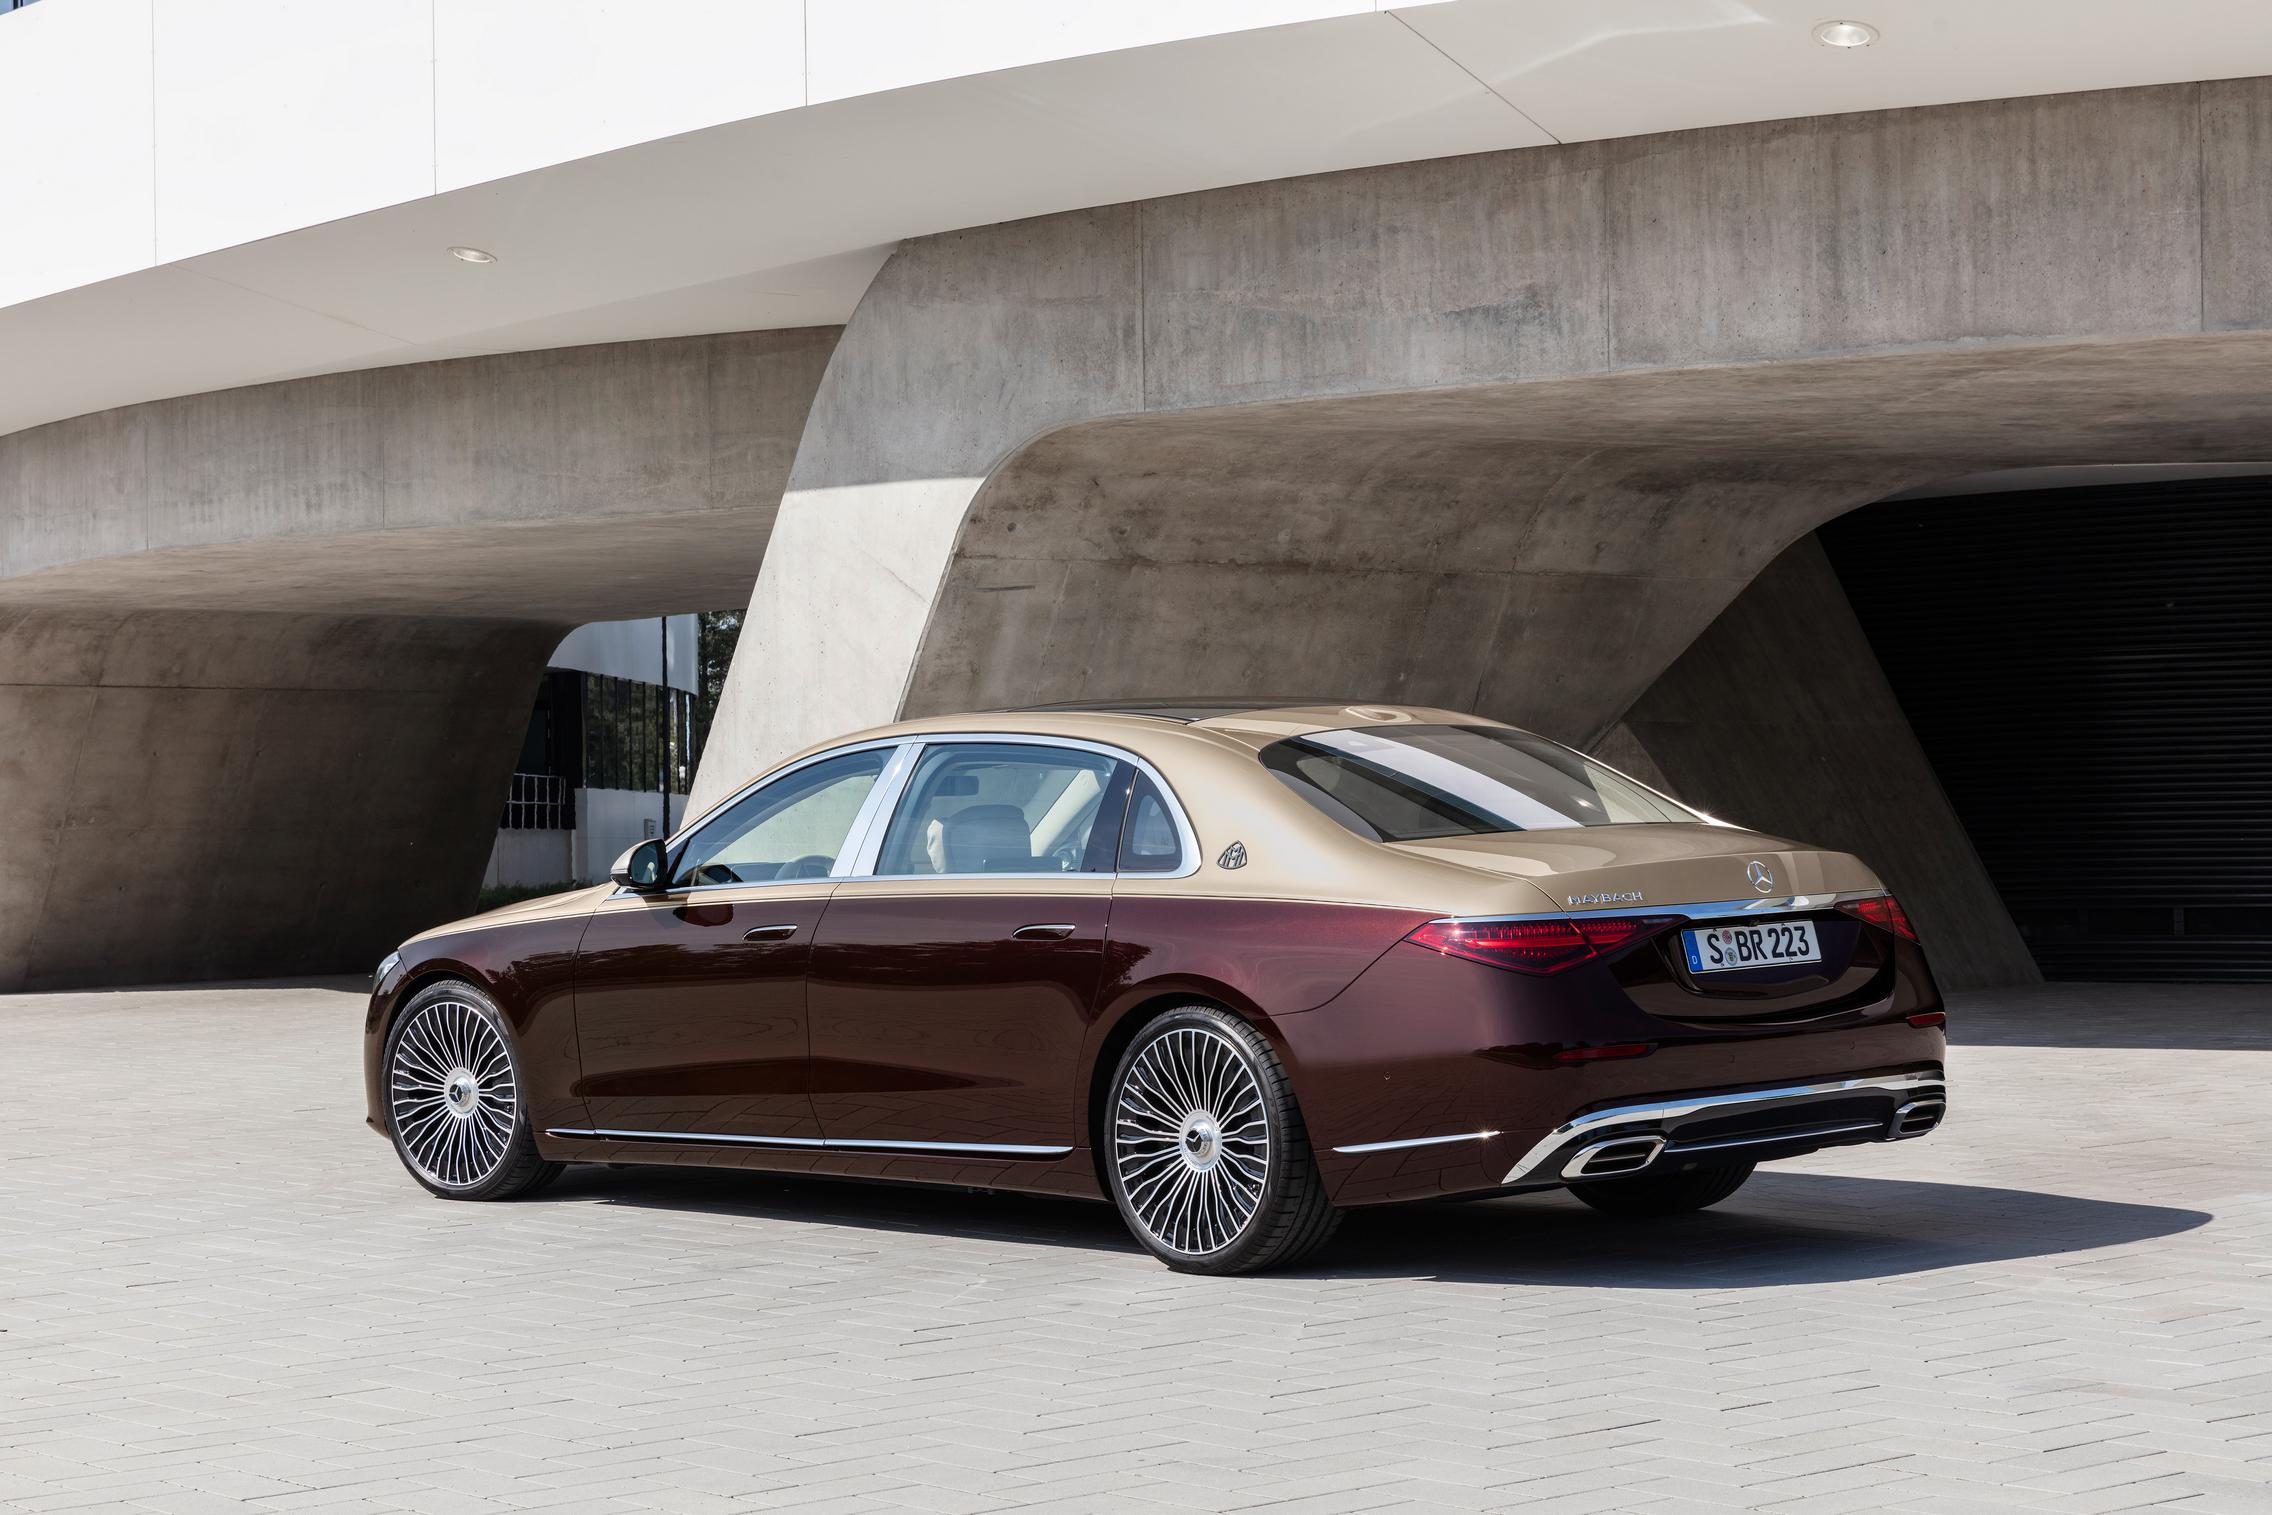 Duo Tone Mercedes-Maybach S-Class